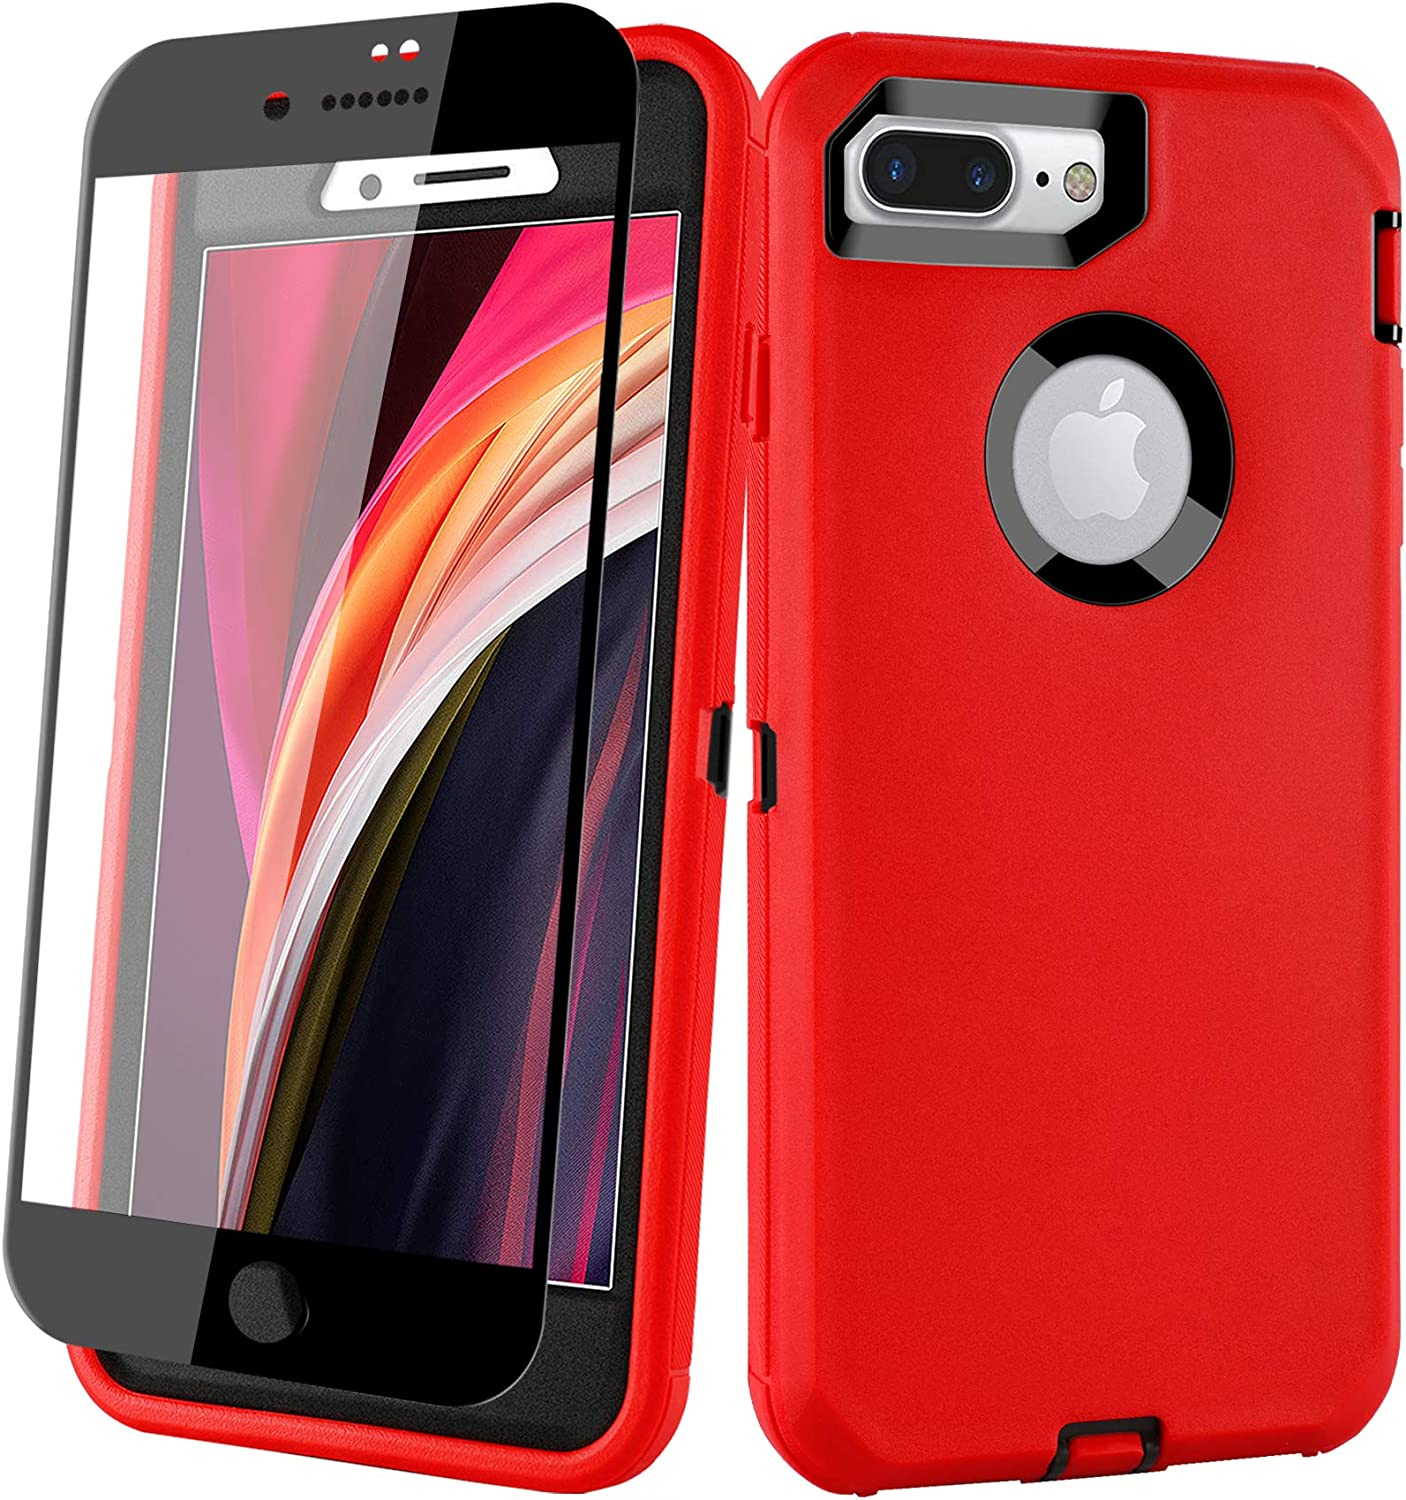 Aopuly iPhone 8 Plus/7 Plus Case with Screen Protector, Heavy Duty Shockproof Full Body Phone Case Protective Rugged Cover for Apple iPhone 7 Plus/8 Plus 5.5